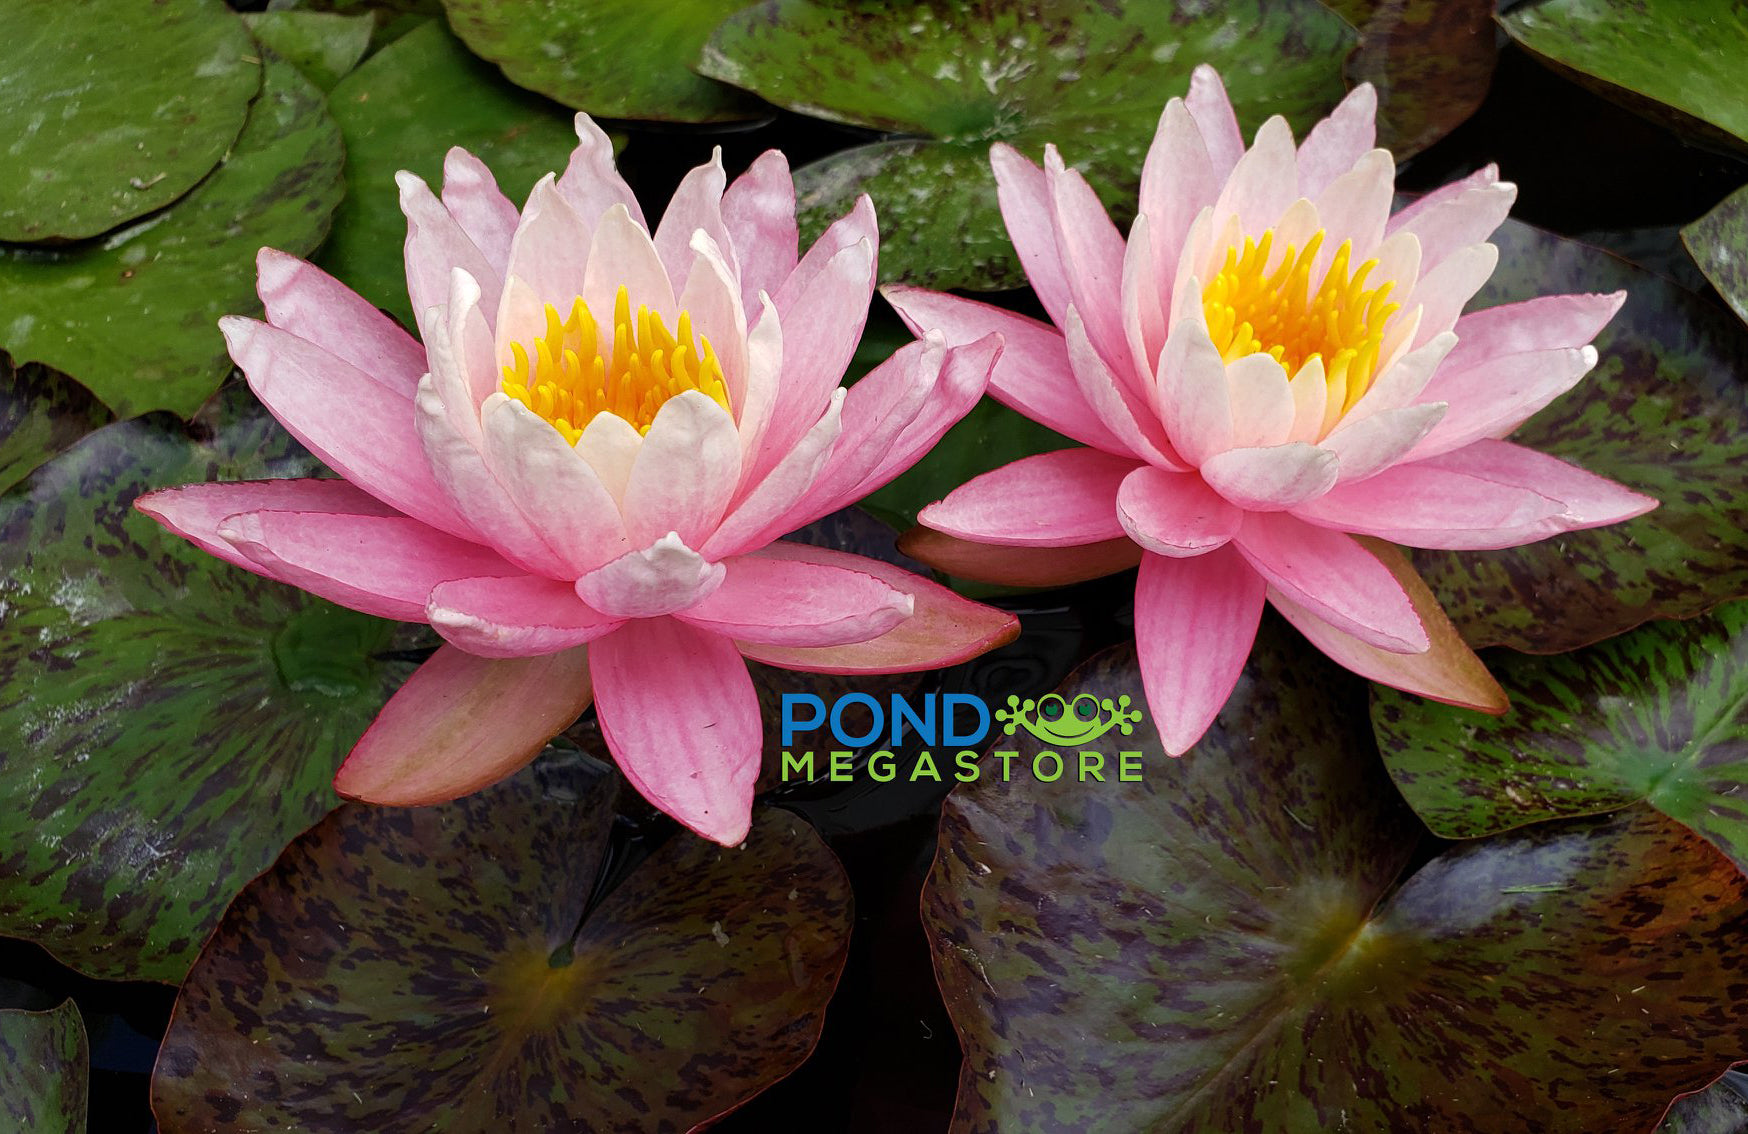 Champion Water Lilies Nymphaea Purchase Buy Pond Plants